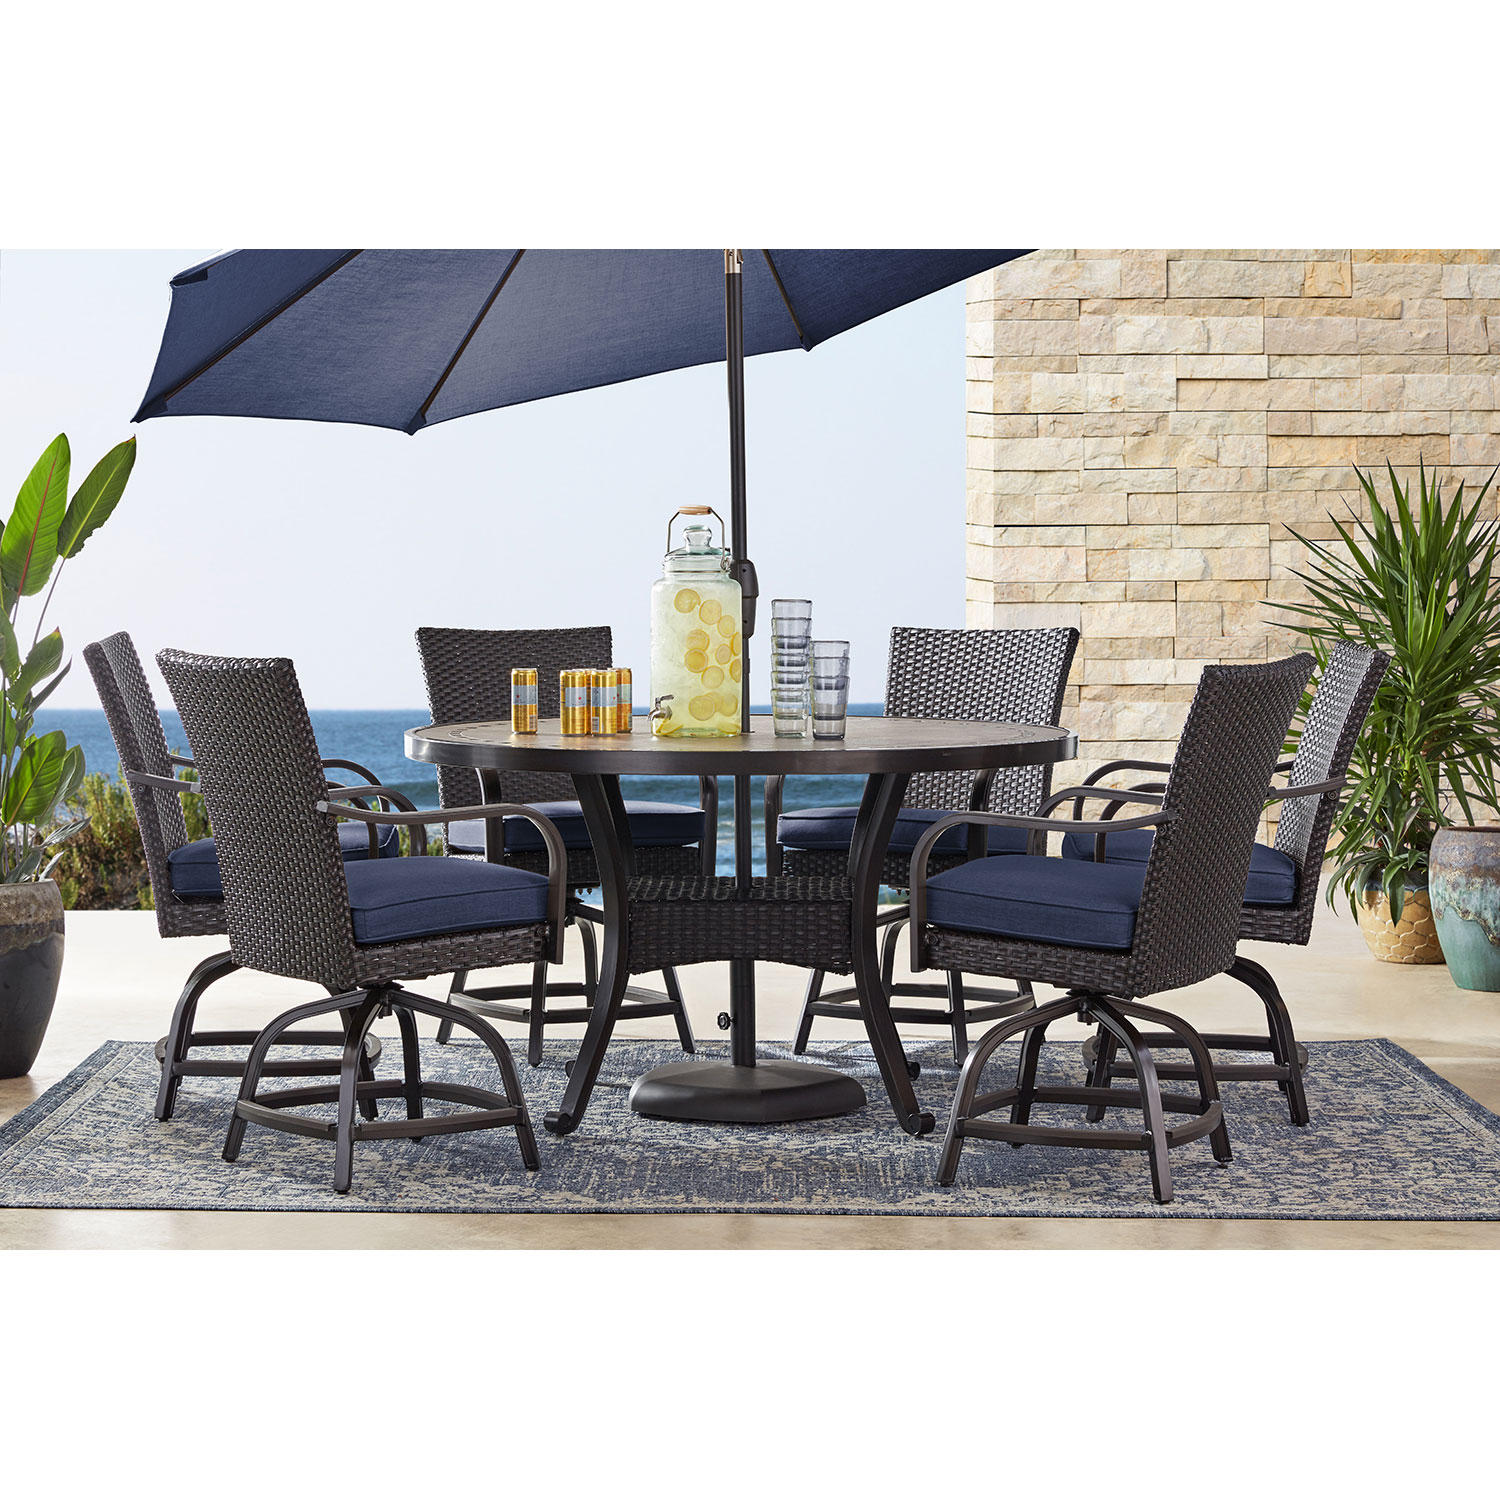 Member's Mark Agio Collection Heritage Balcony 7 Piece Dining Set